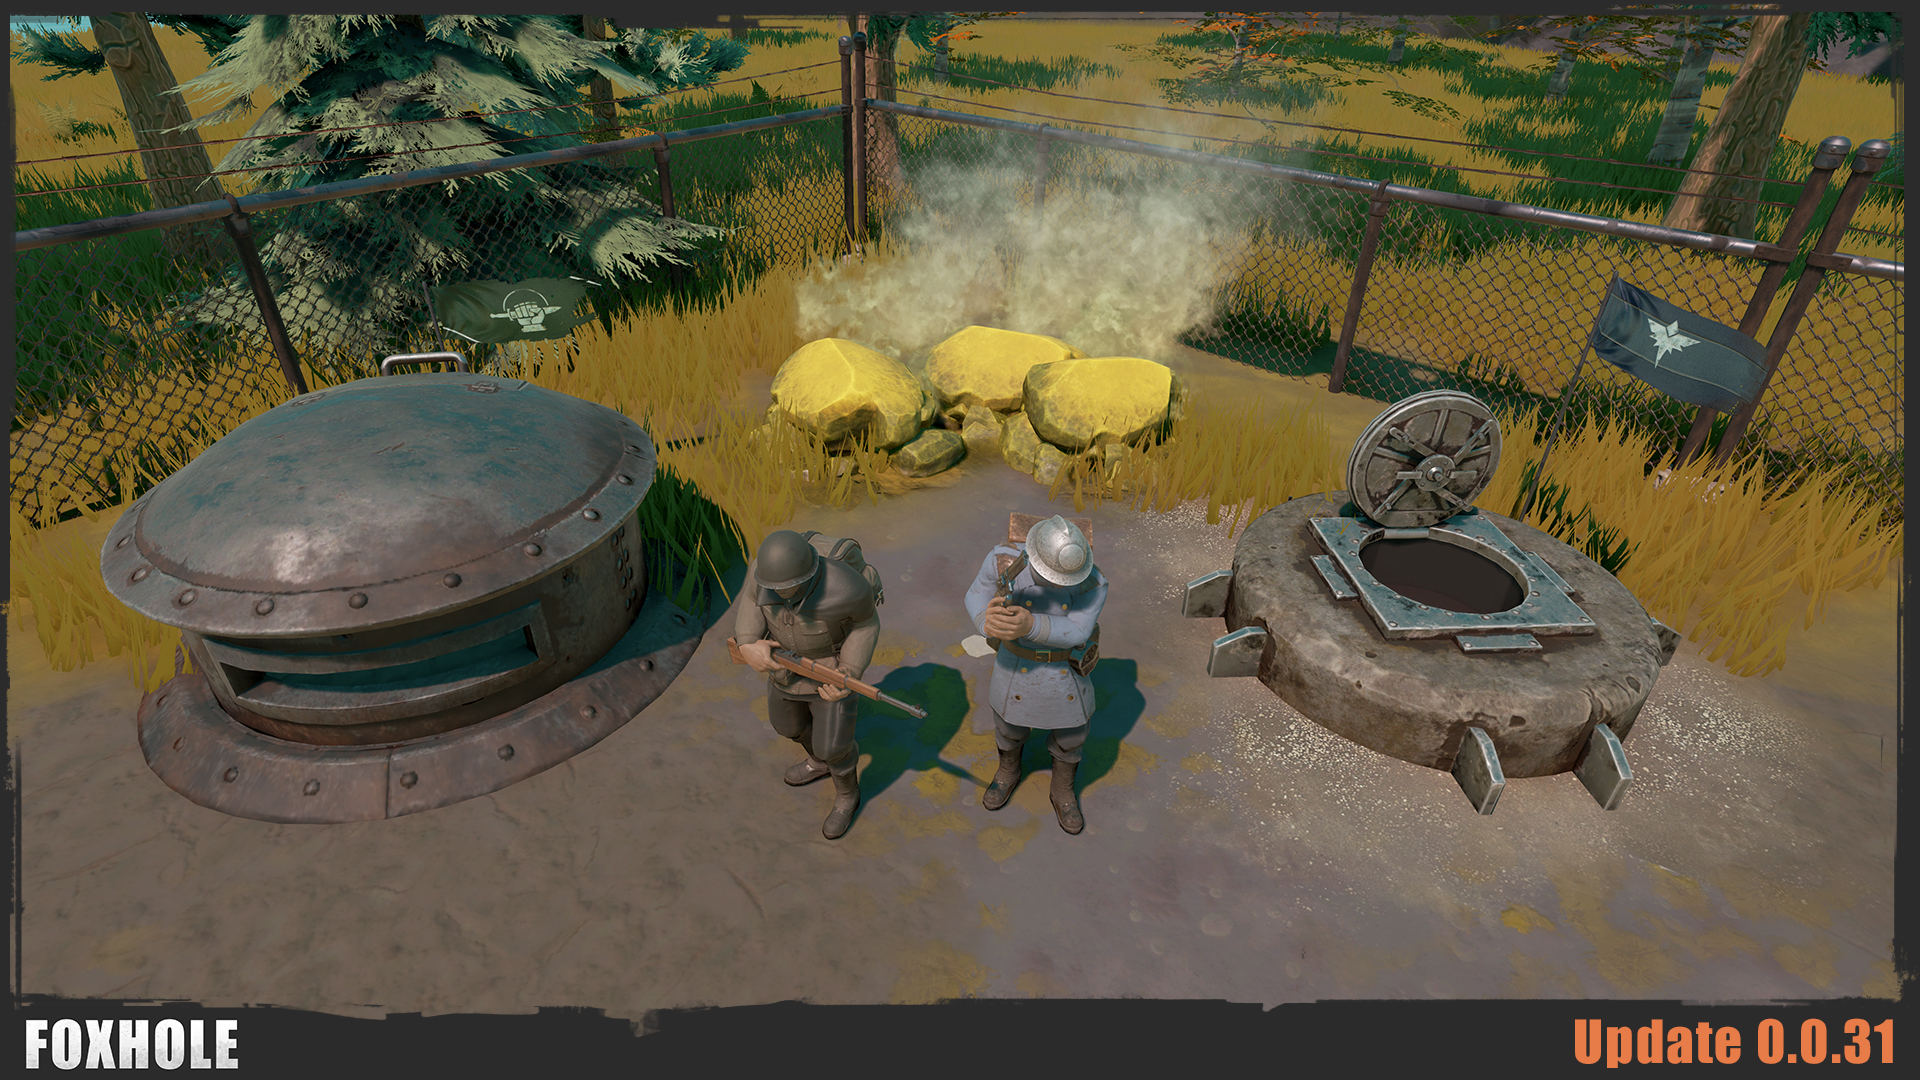 foxhole 0 0 31 release notes foxhole persistent war mmo